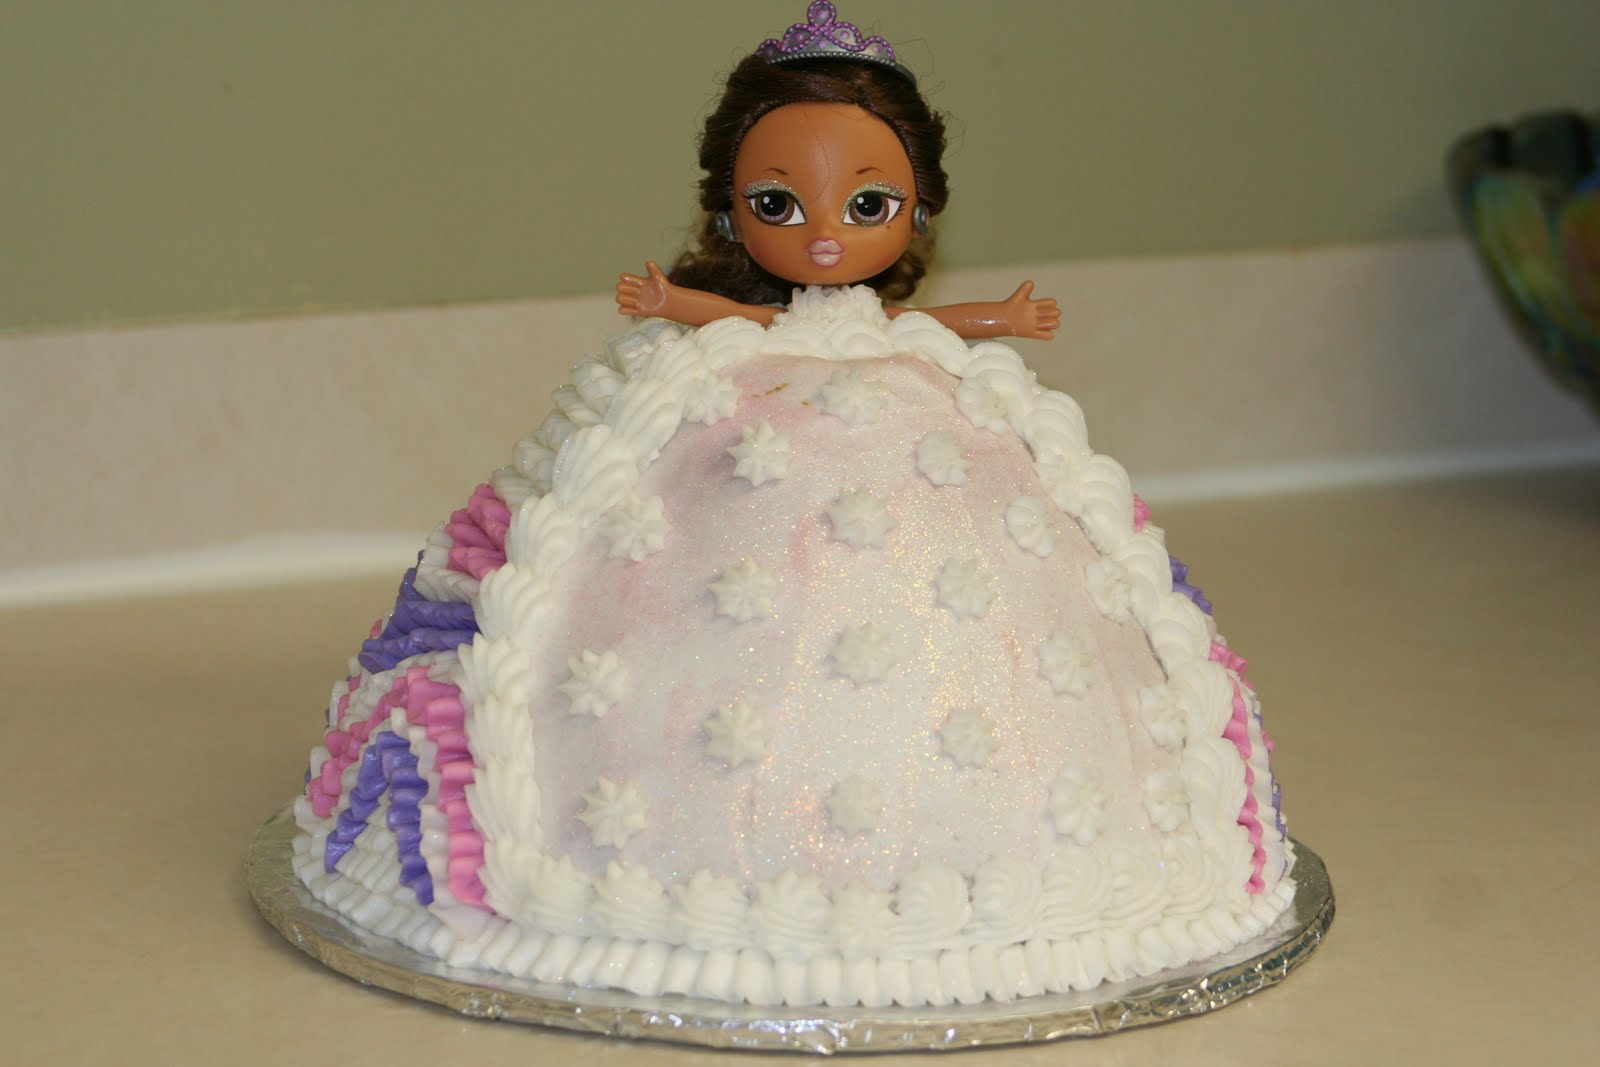 Birthday Cake Pics For Little Girl : BirthdayCakes4Free-Beloit, KS: BIRTHDAY CAKE FOR EIGHT ...